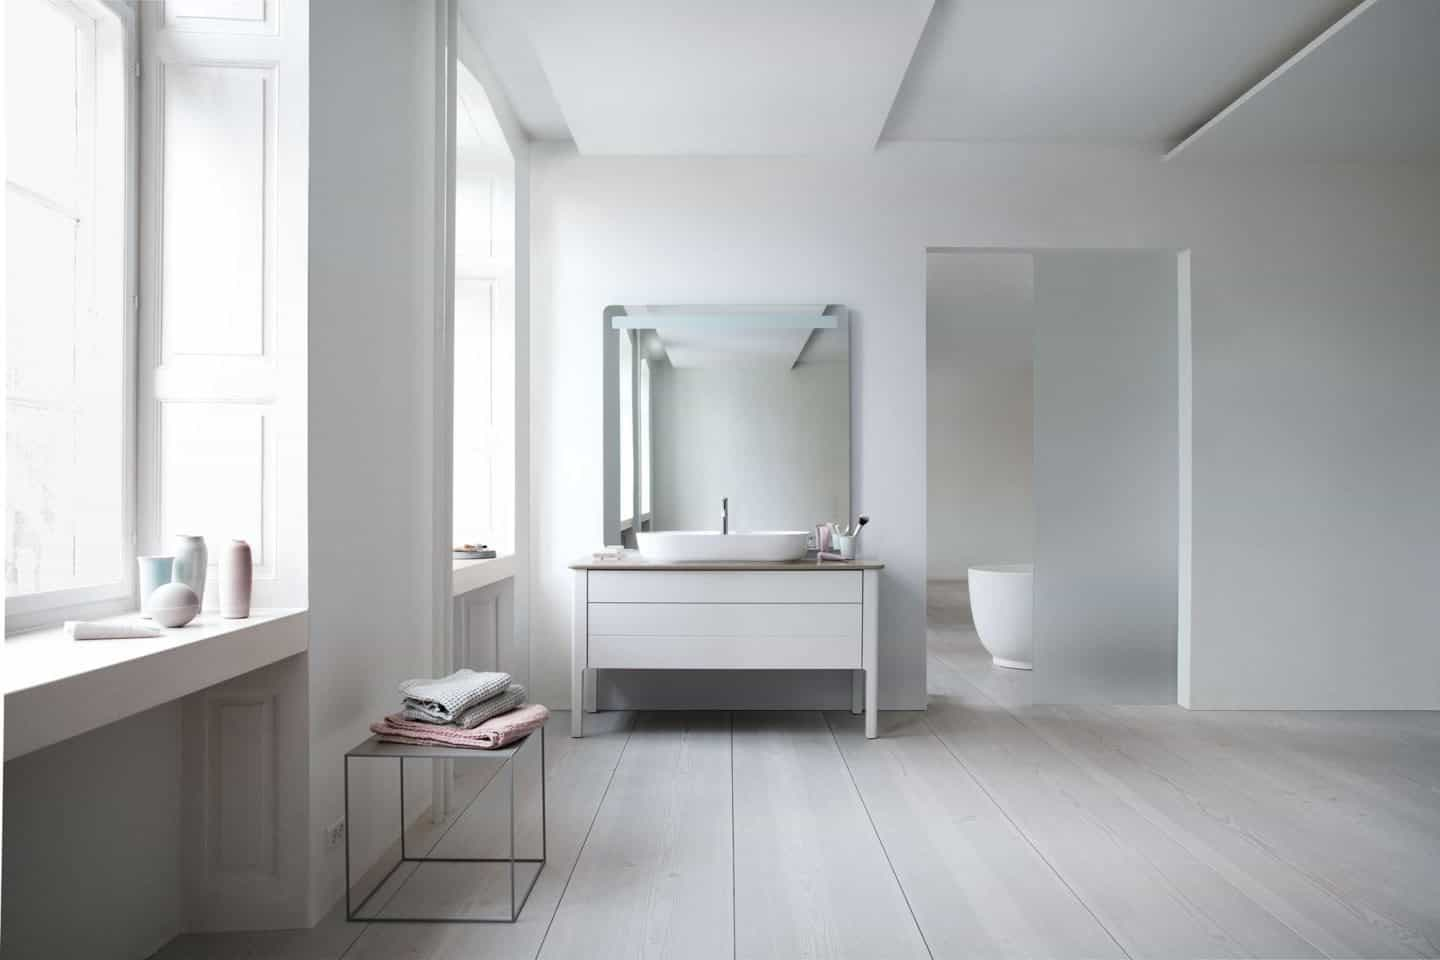 The Luv collection by luxury bathroom brand Duravit. Two large windows on the left and a basin on the adjacent wall.